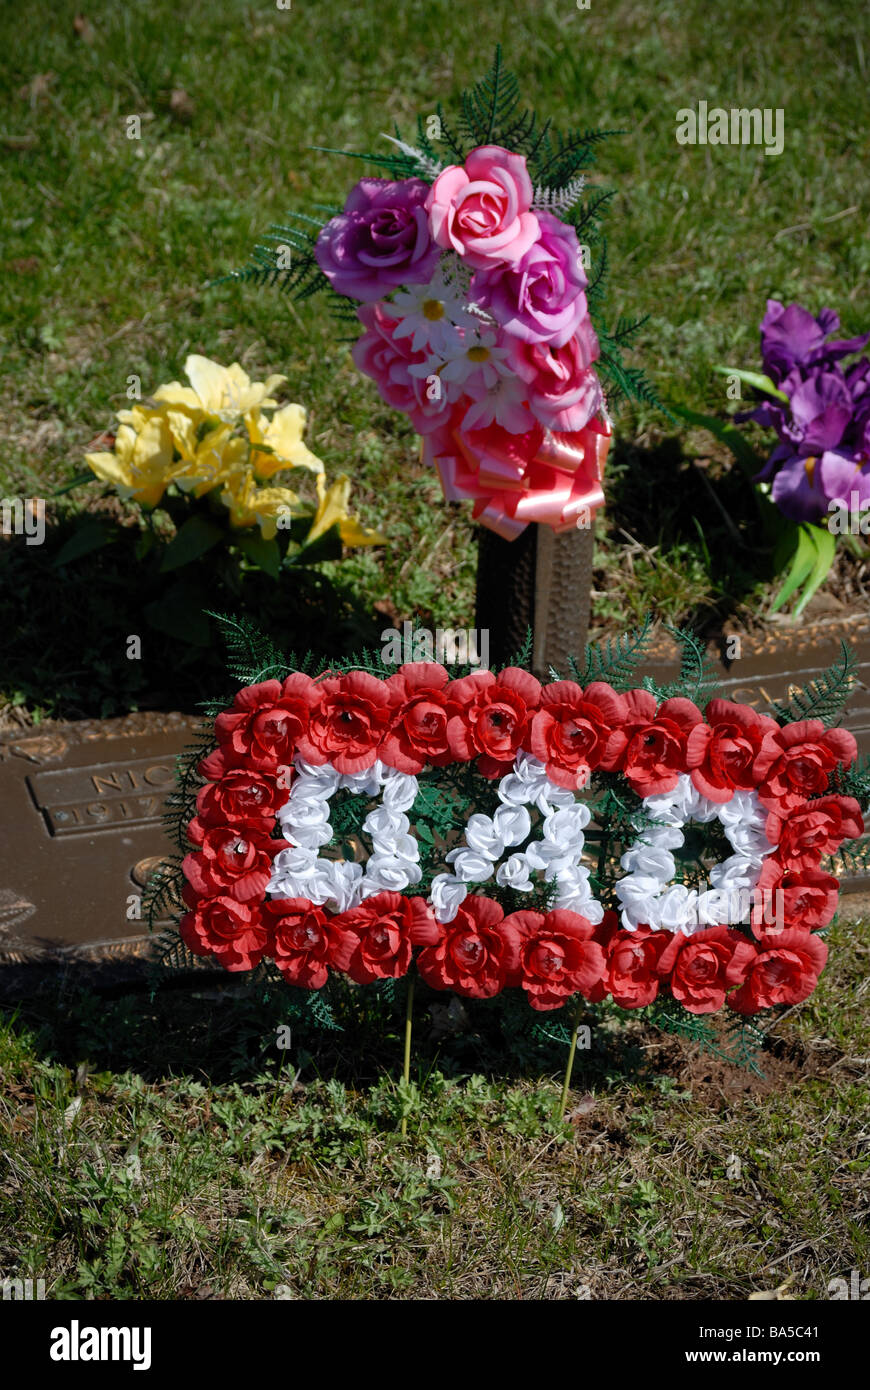 Tomb flower arrangement stock photos tomb flower arrangement stock flowers and a dad memento decorate a grave in allegheny cemetery pittsburgh izmirmasajfo